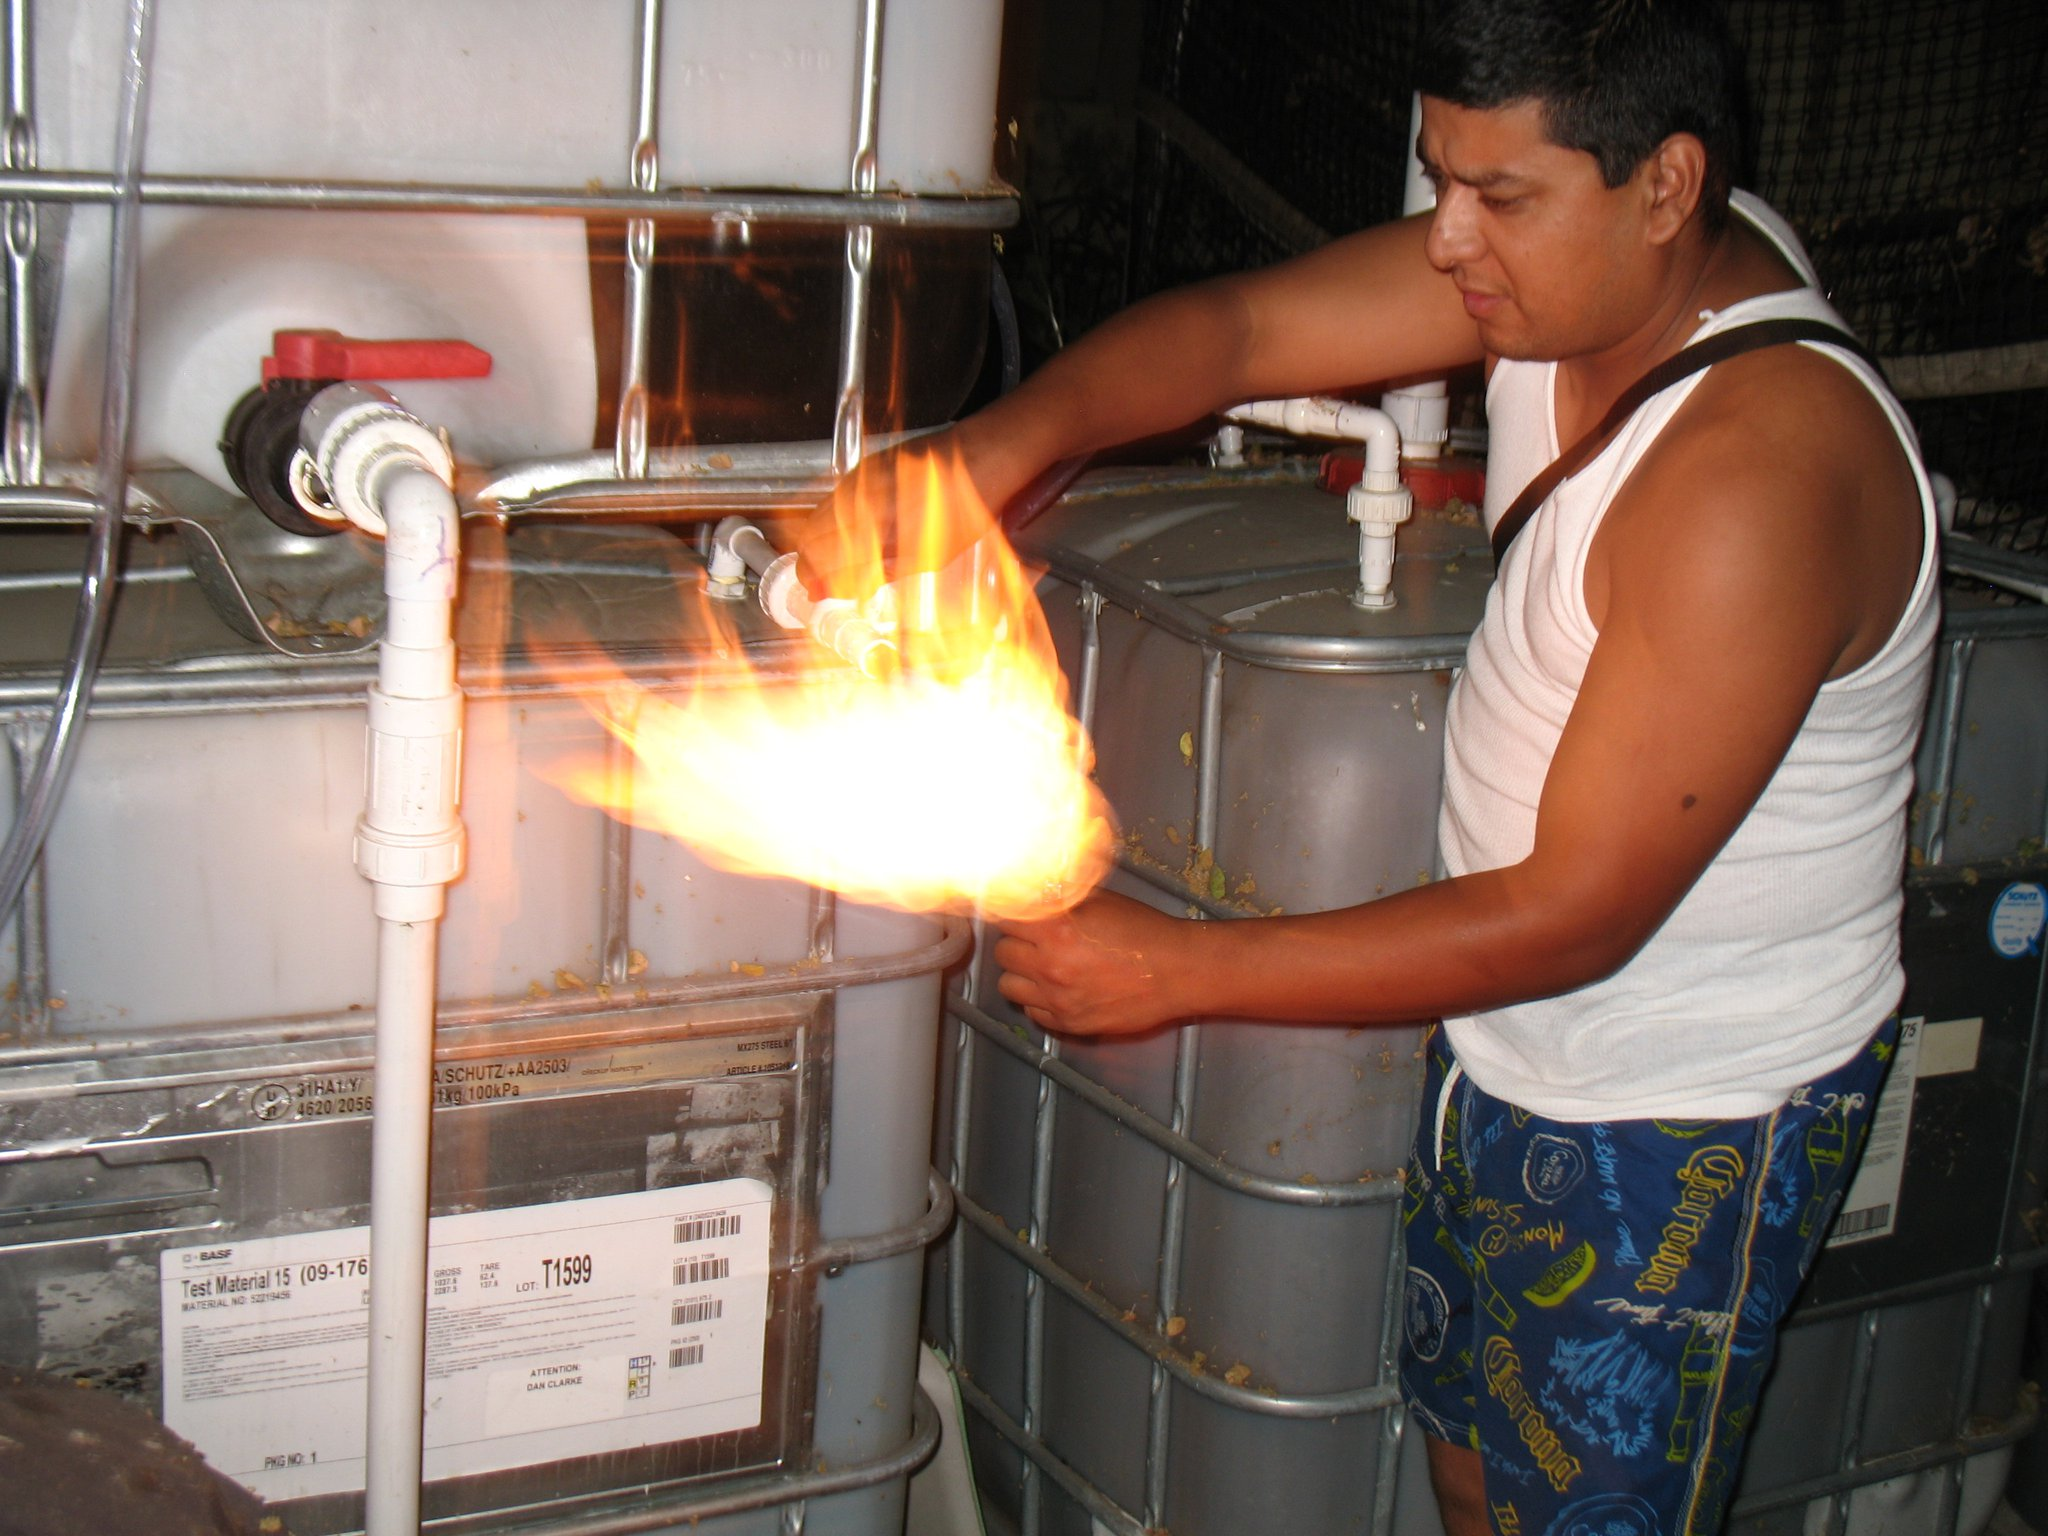 """""""Flame On"""" -- Biogas in the 'Hood demonstrated by Alvaro Silva, director of Solar South Central and Los Angeles colleague of Solar CITIES, bringing renewable energy systems to the Latino community."""